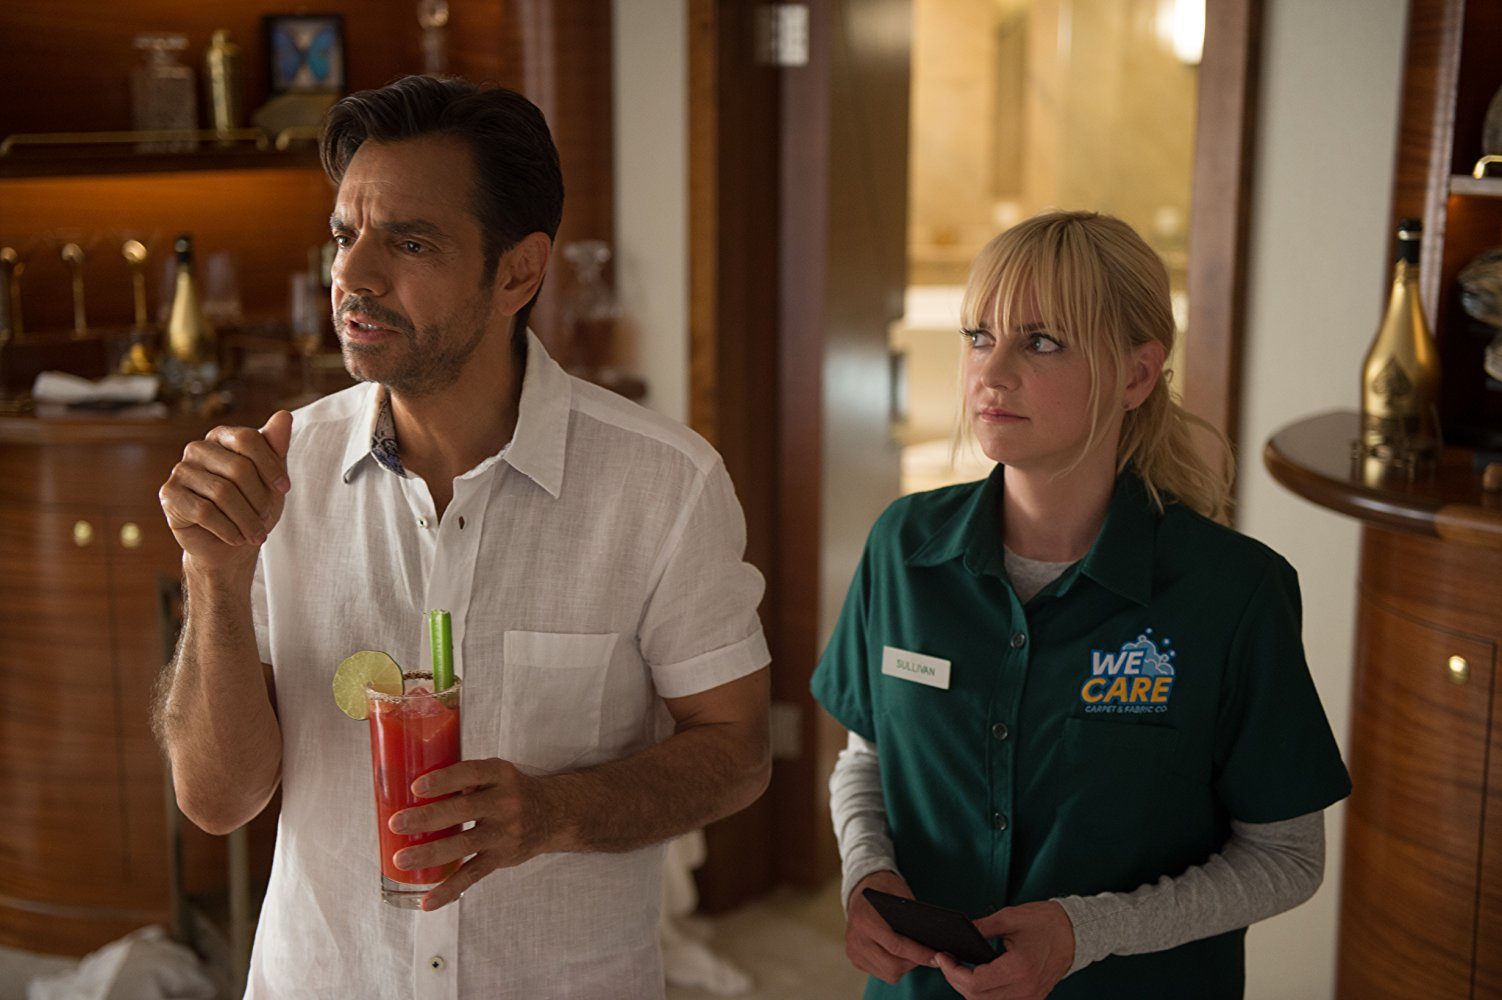 Here's How the Gender-Swapped 'Overboard' Remake Compares to the 1987 Original